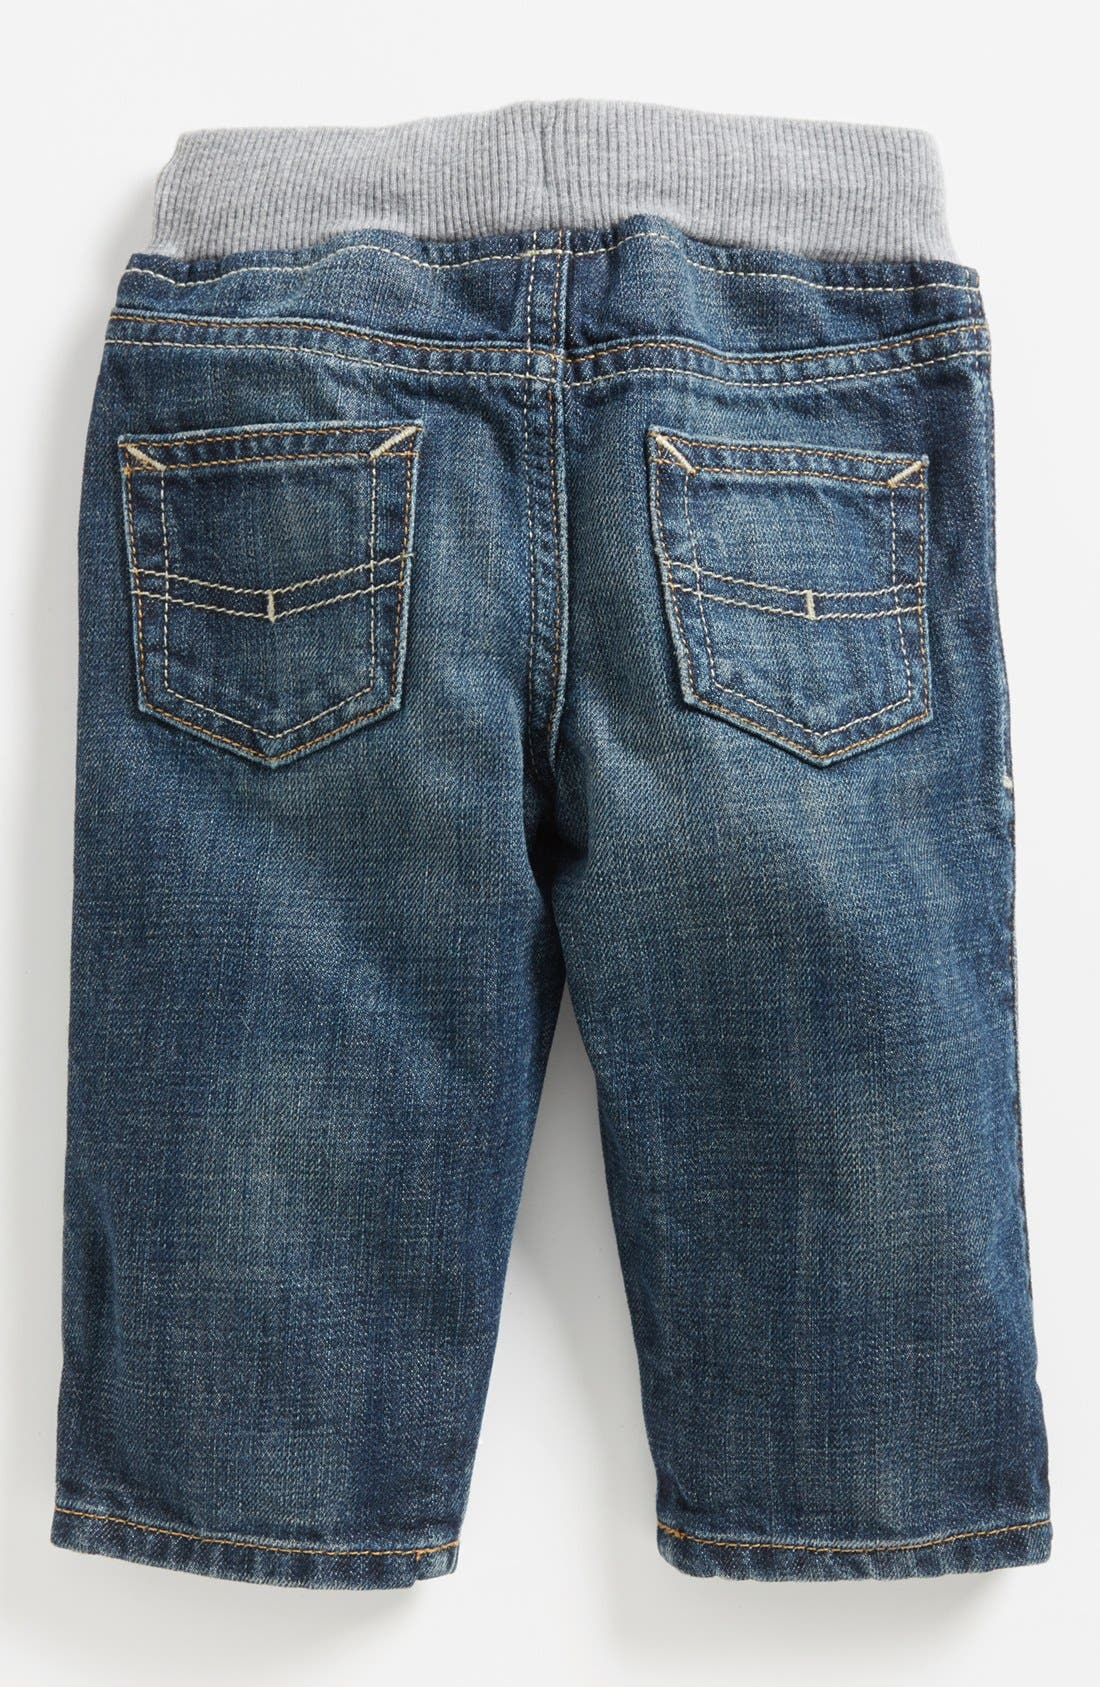 Alternate Image 1 Selected - Tucker + Tate Ribbed Waistband Jeans (Baby Boys)